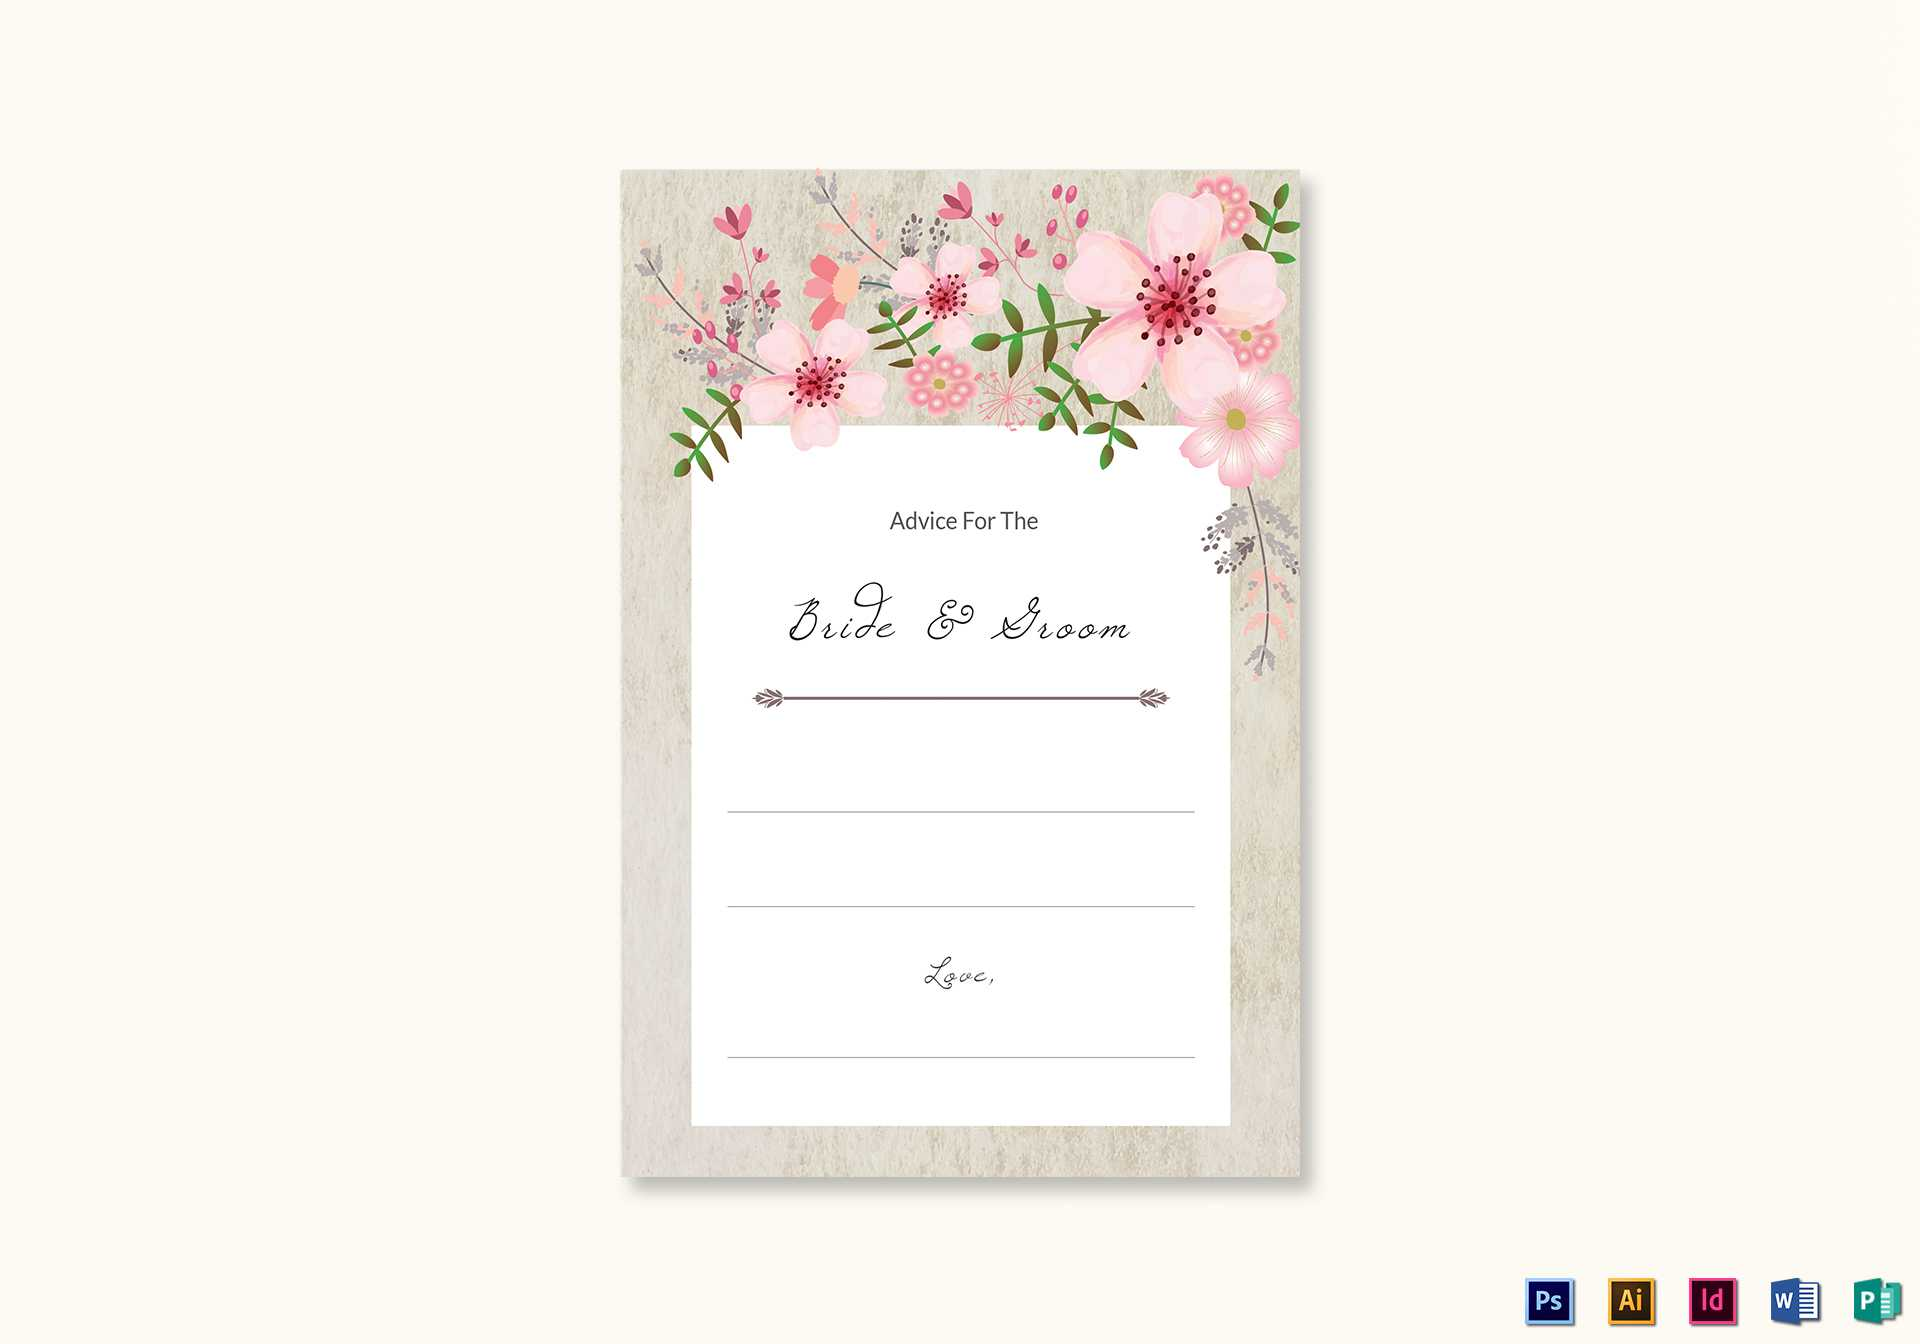 Pink Floral Wedding Advice Card Template Regarding Marriage Advice Cards Templates